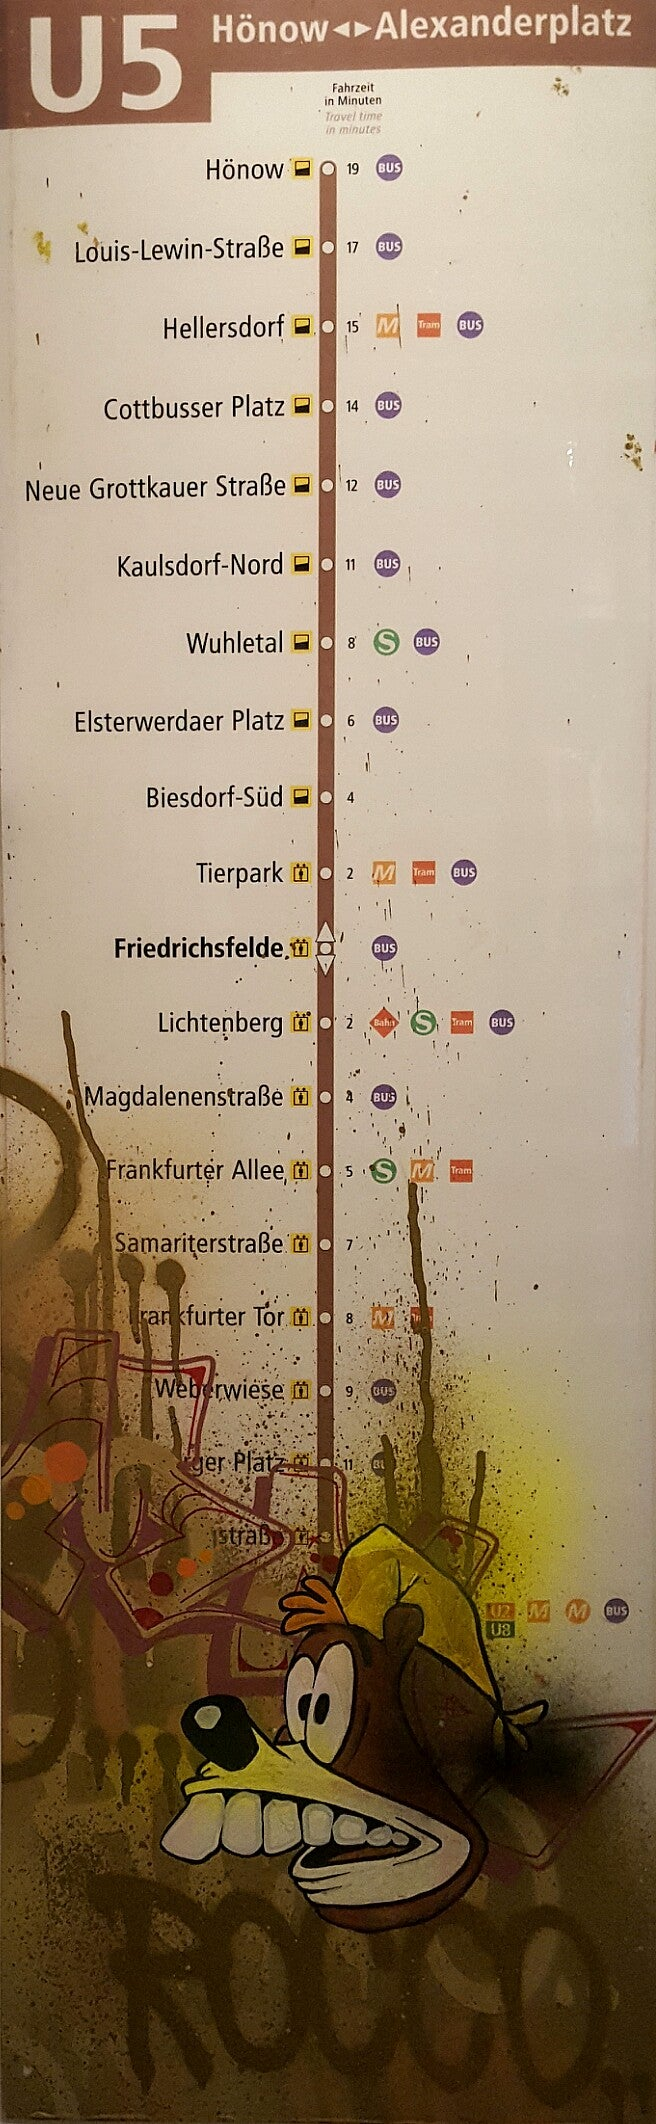 Image of 'All Lines Berlin Subway U5' by Kaos, Marr and Rocco.